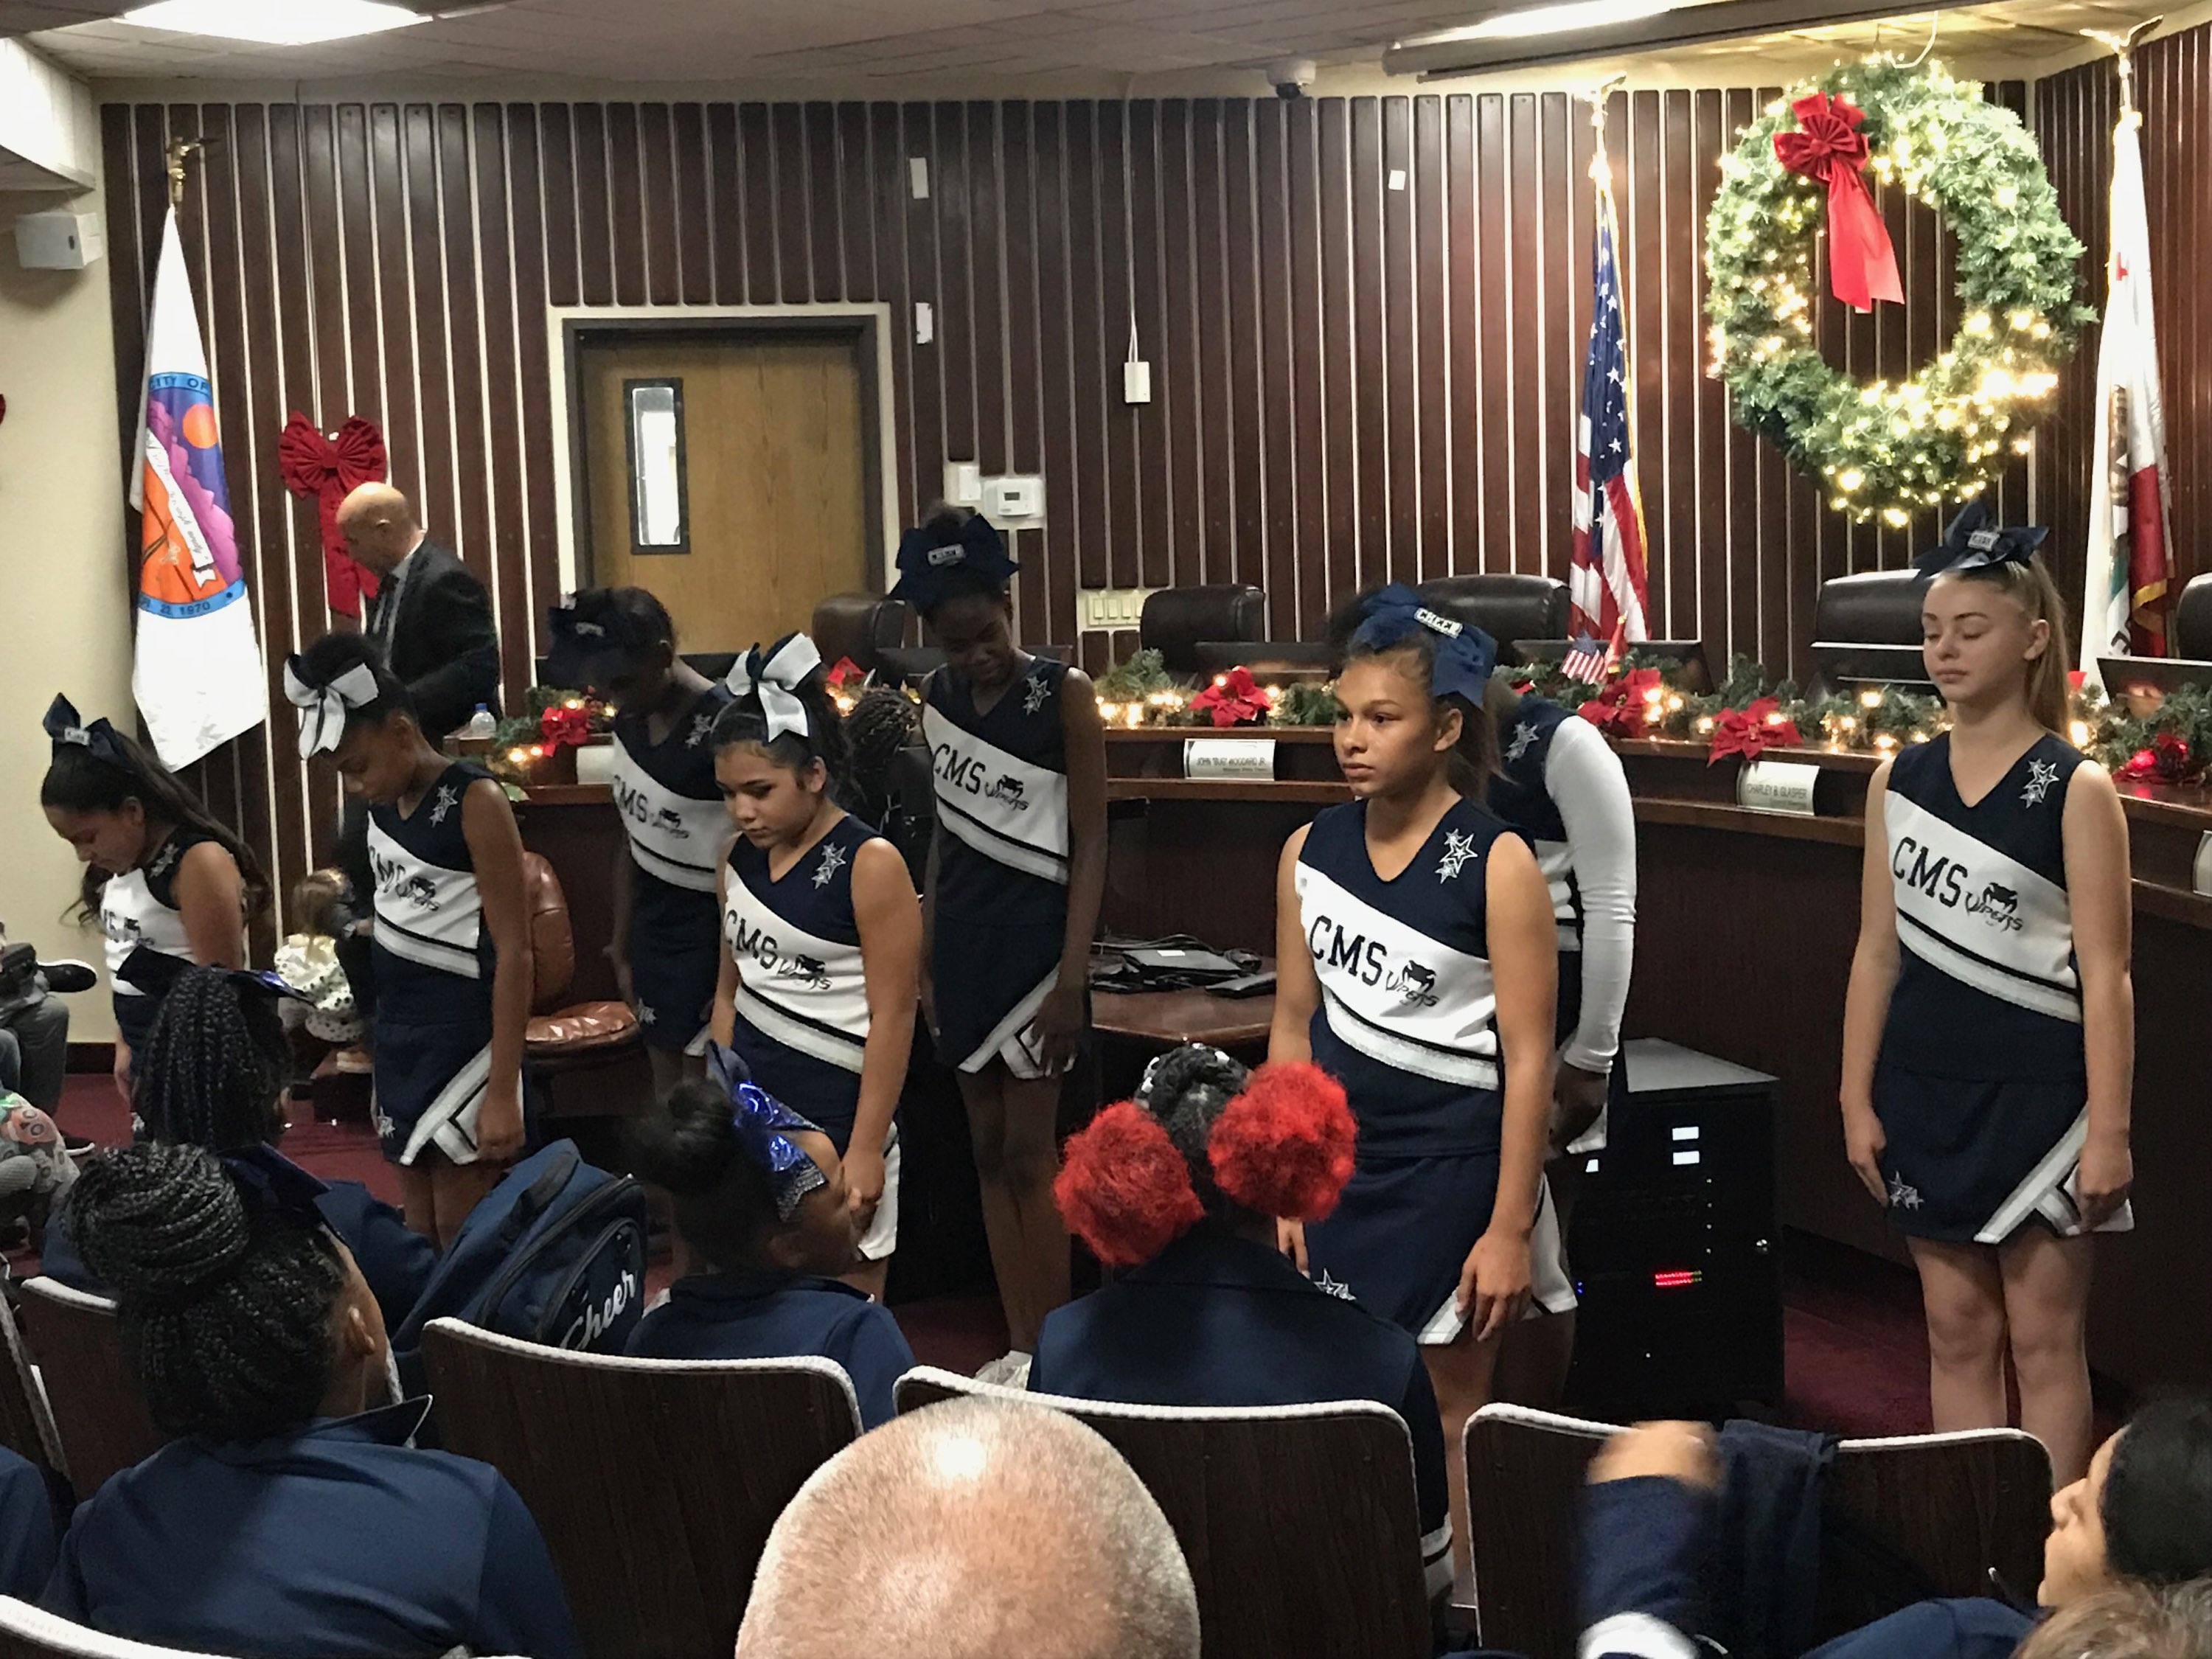 Viper Cheerleaders at Adelanto City Hall